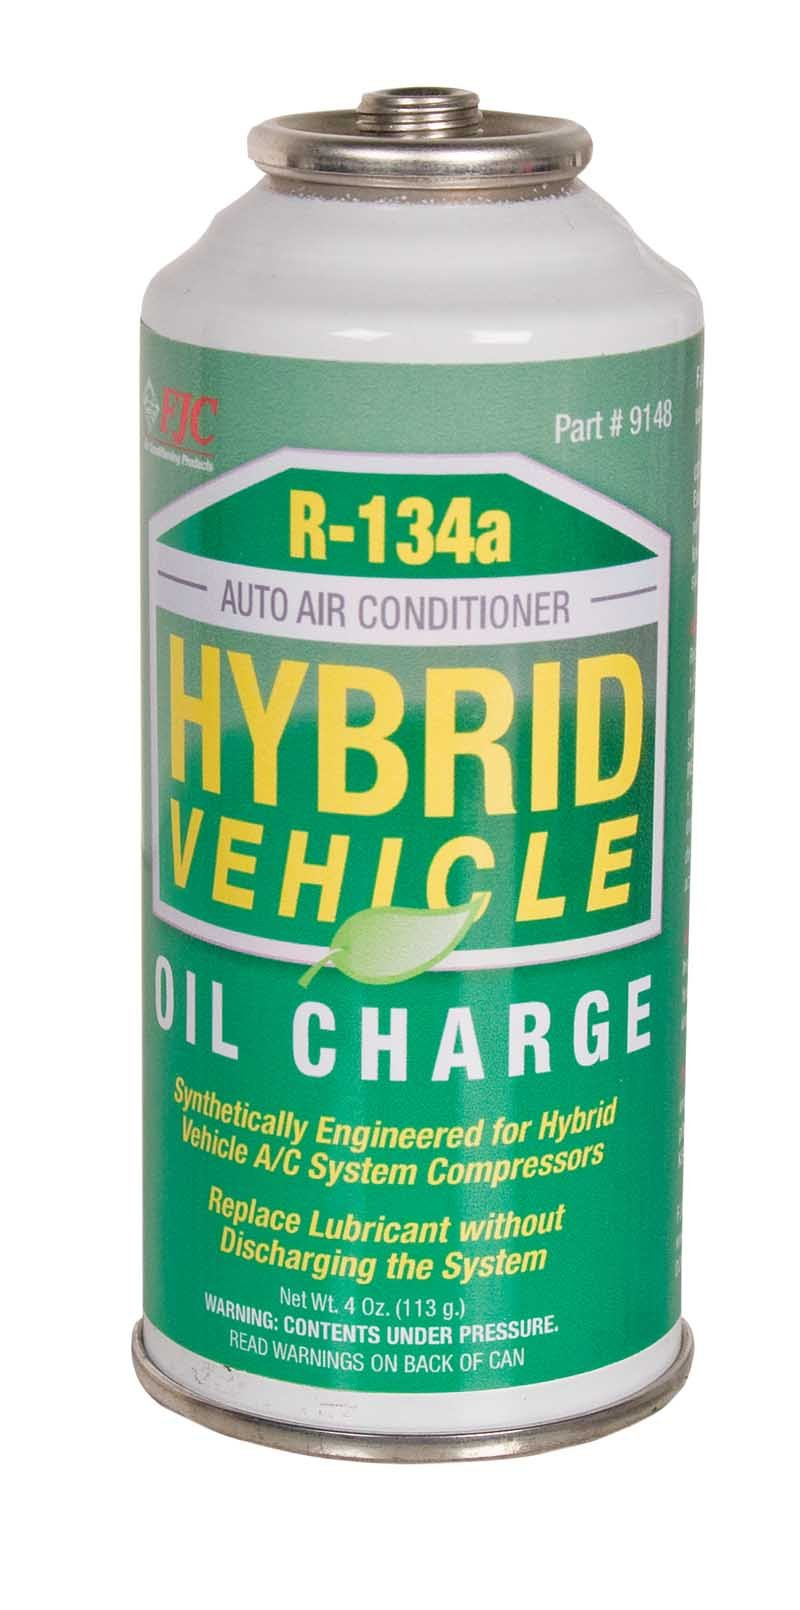 FJC 9148 Oil Charge - 4 oz.